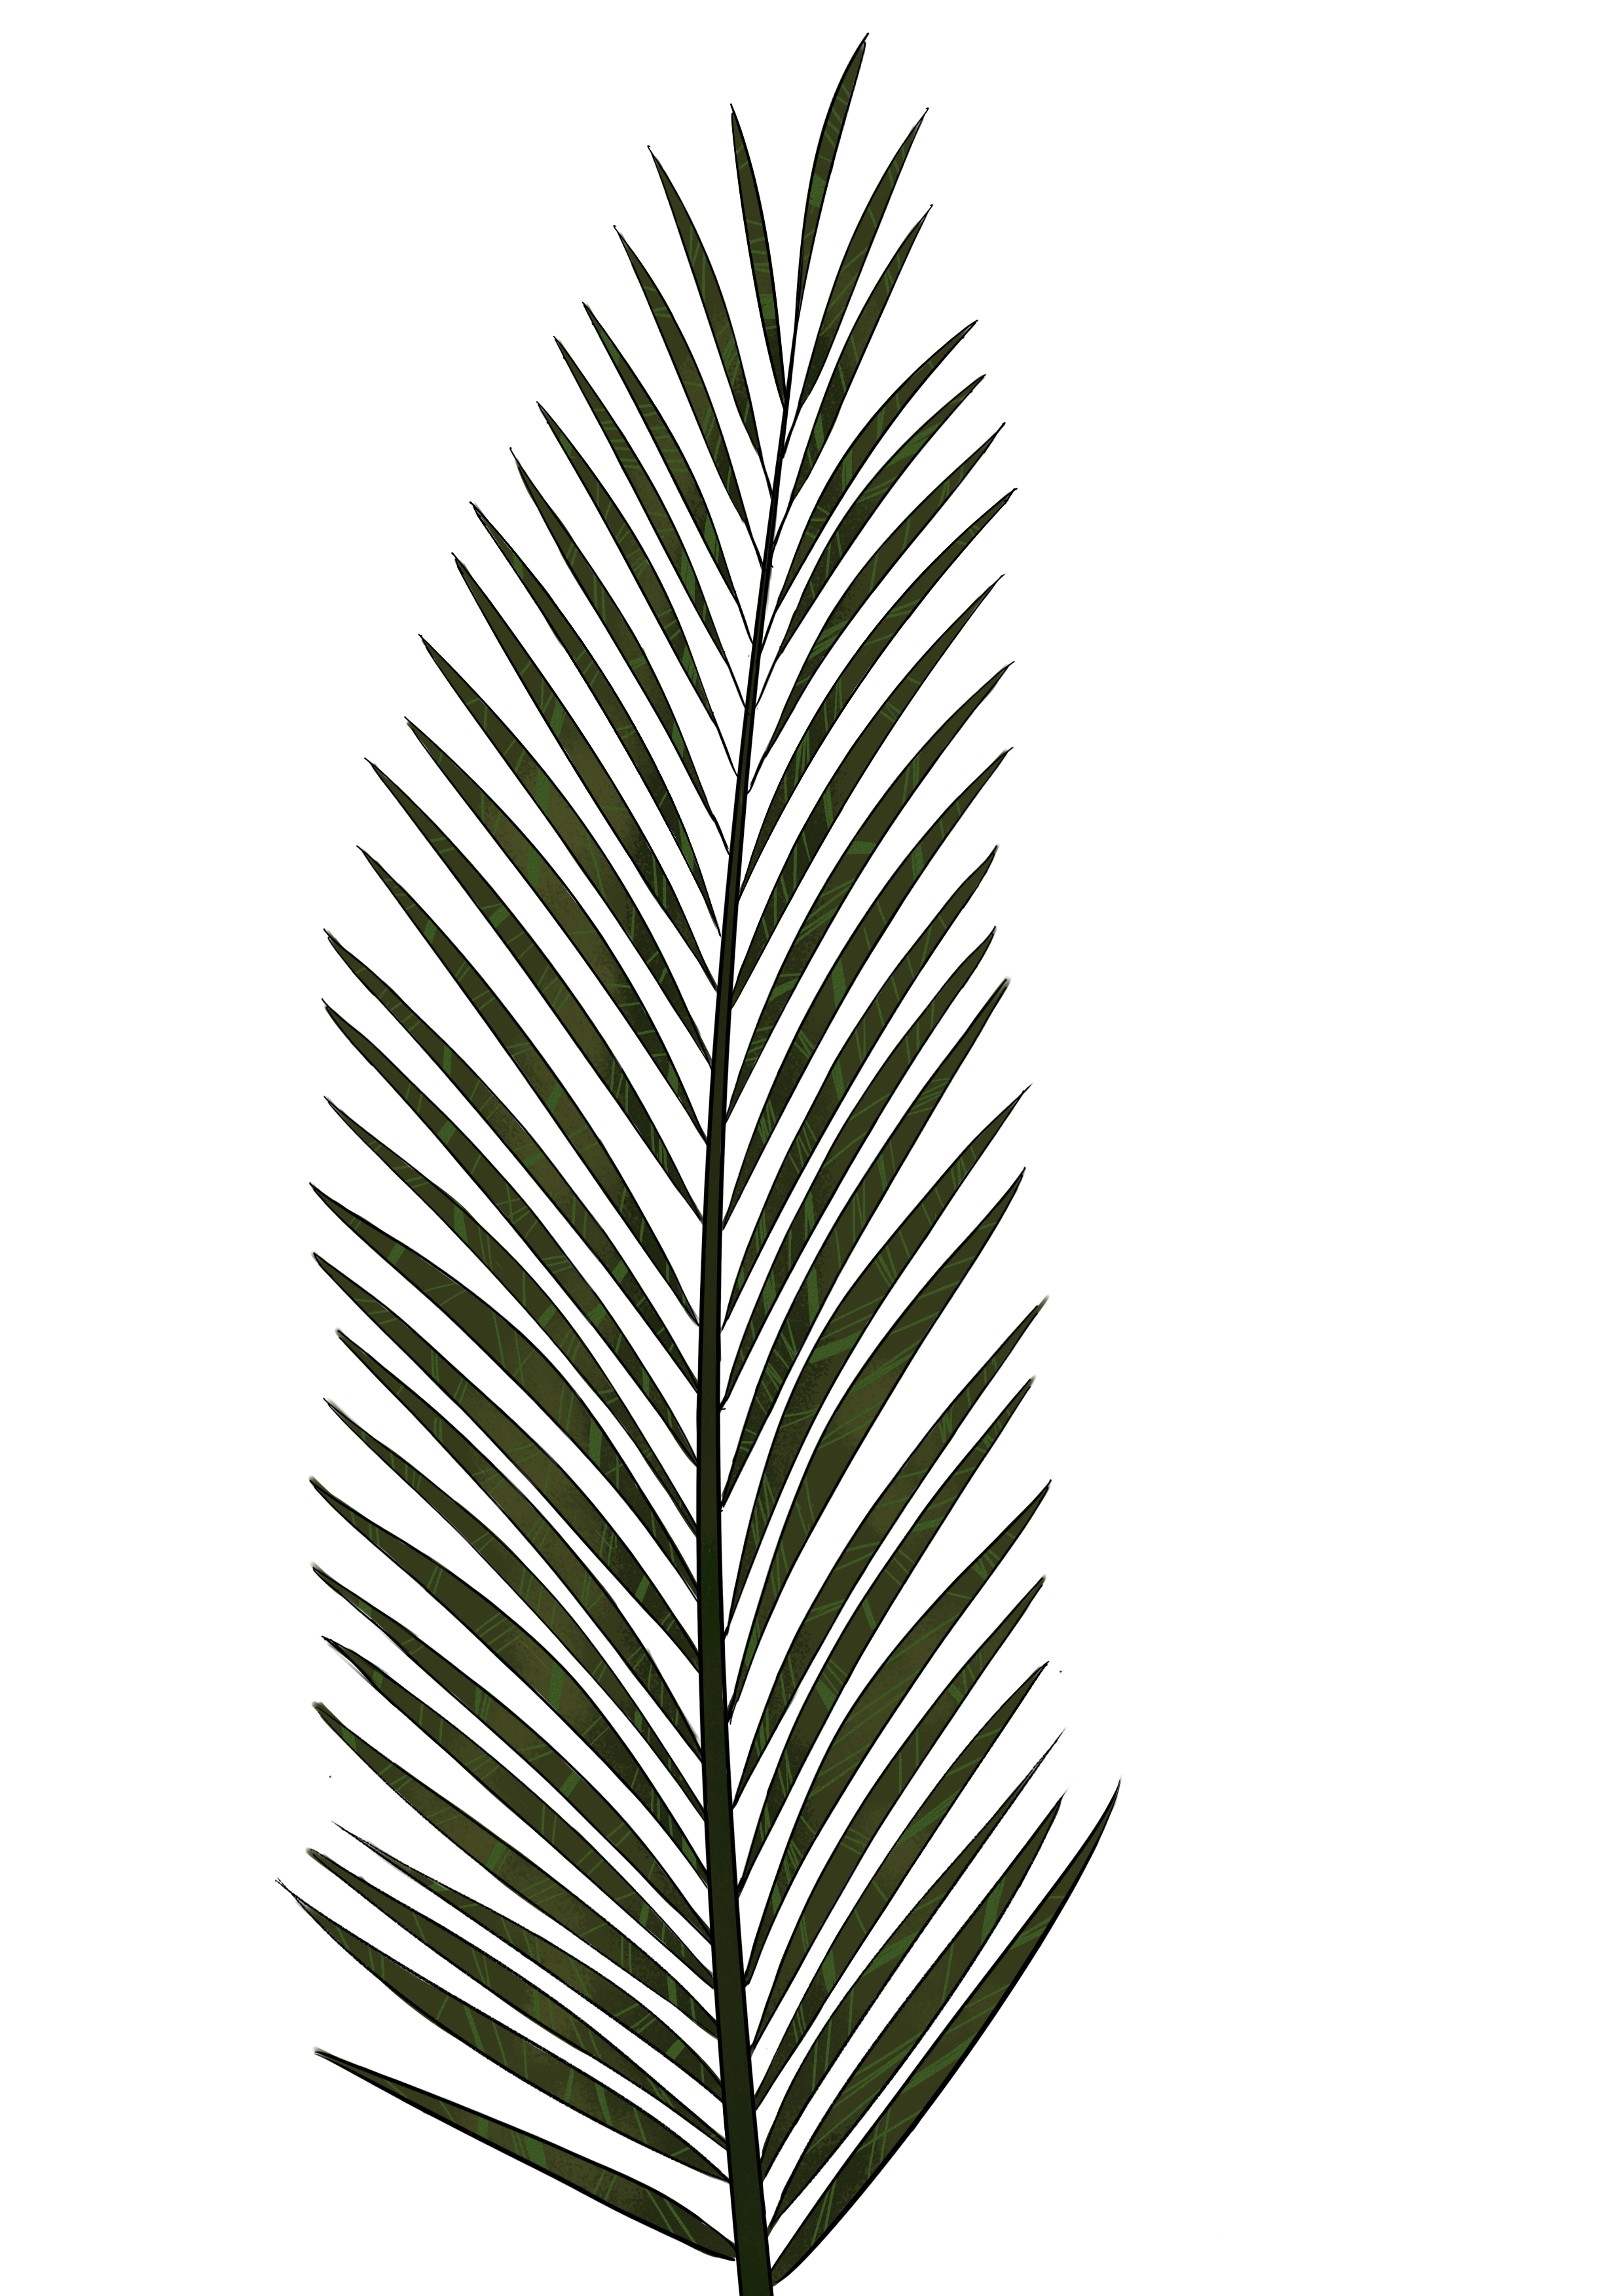 2480x3507 Cp Paurb Palm Leaf Png Textures And Style Radin Mas